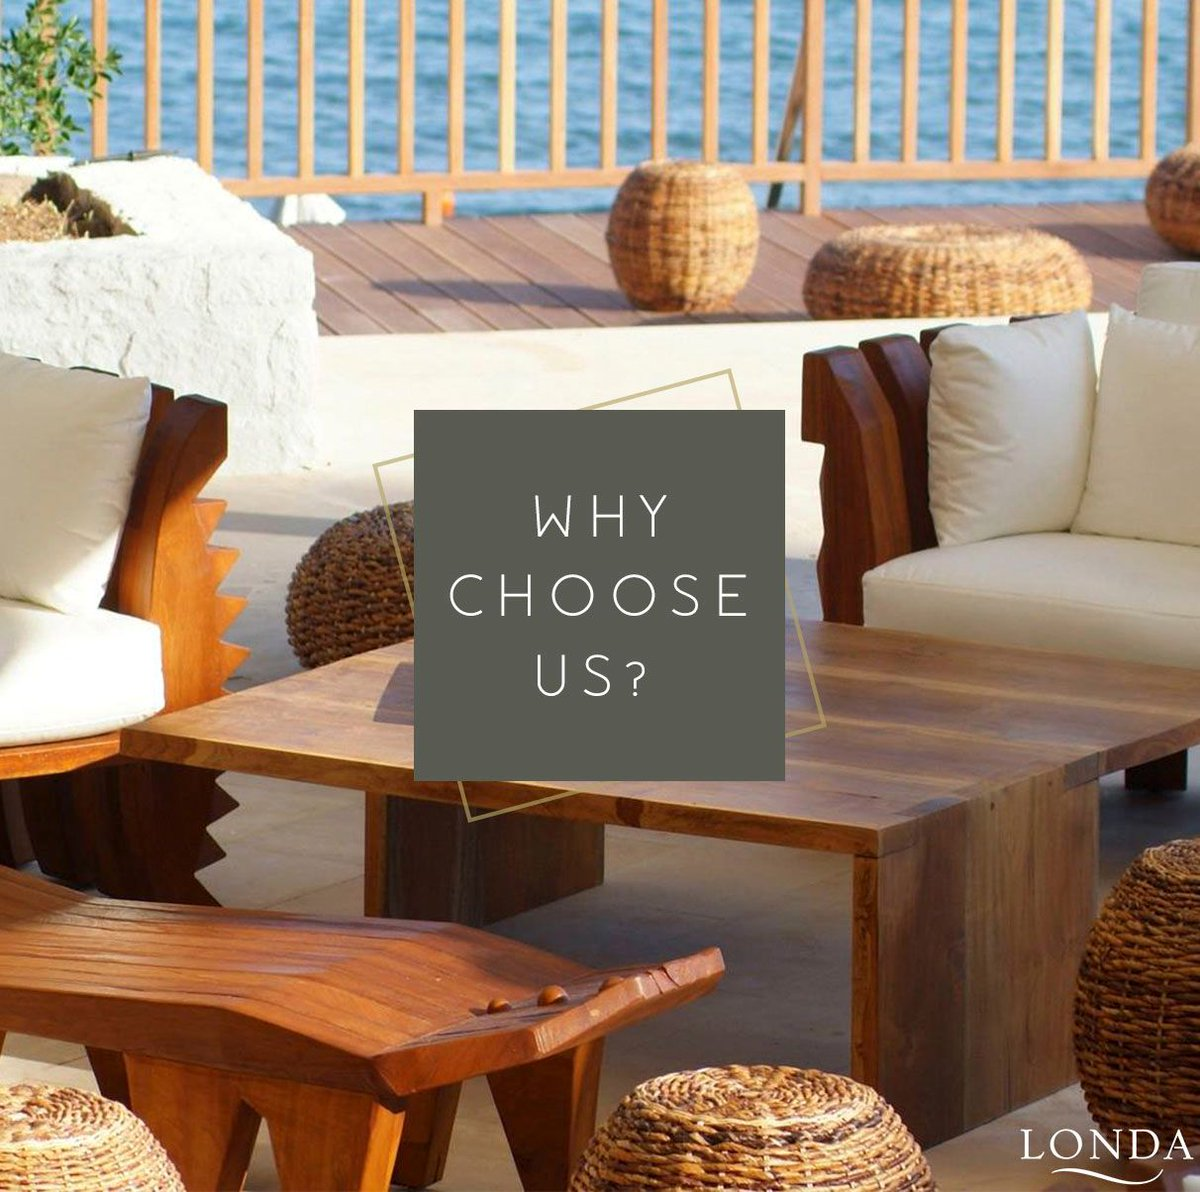 Would you like to hear a reason why to choose us for your summer holidays?  Well… how about: Because we are the hotel you adore… The #londahotel! #londabeachhotel #whychooseus #summerholidays #limassol #cyprus #hotelsinlimassol #reasons #chooseus #stayhome #stayhealthy #besafe https://t.co/eNTNHUz6I0